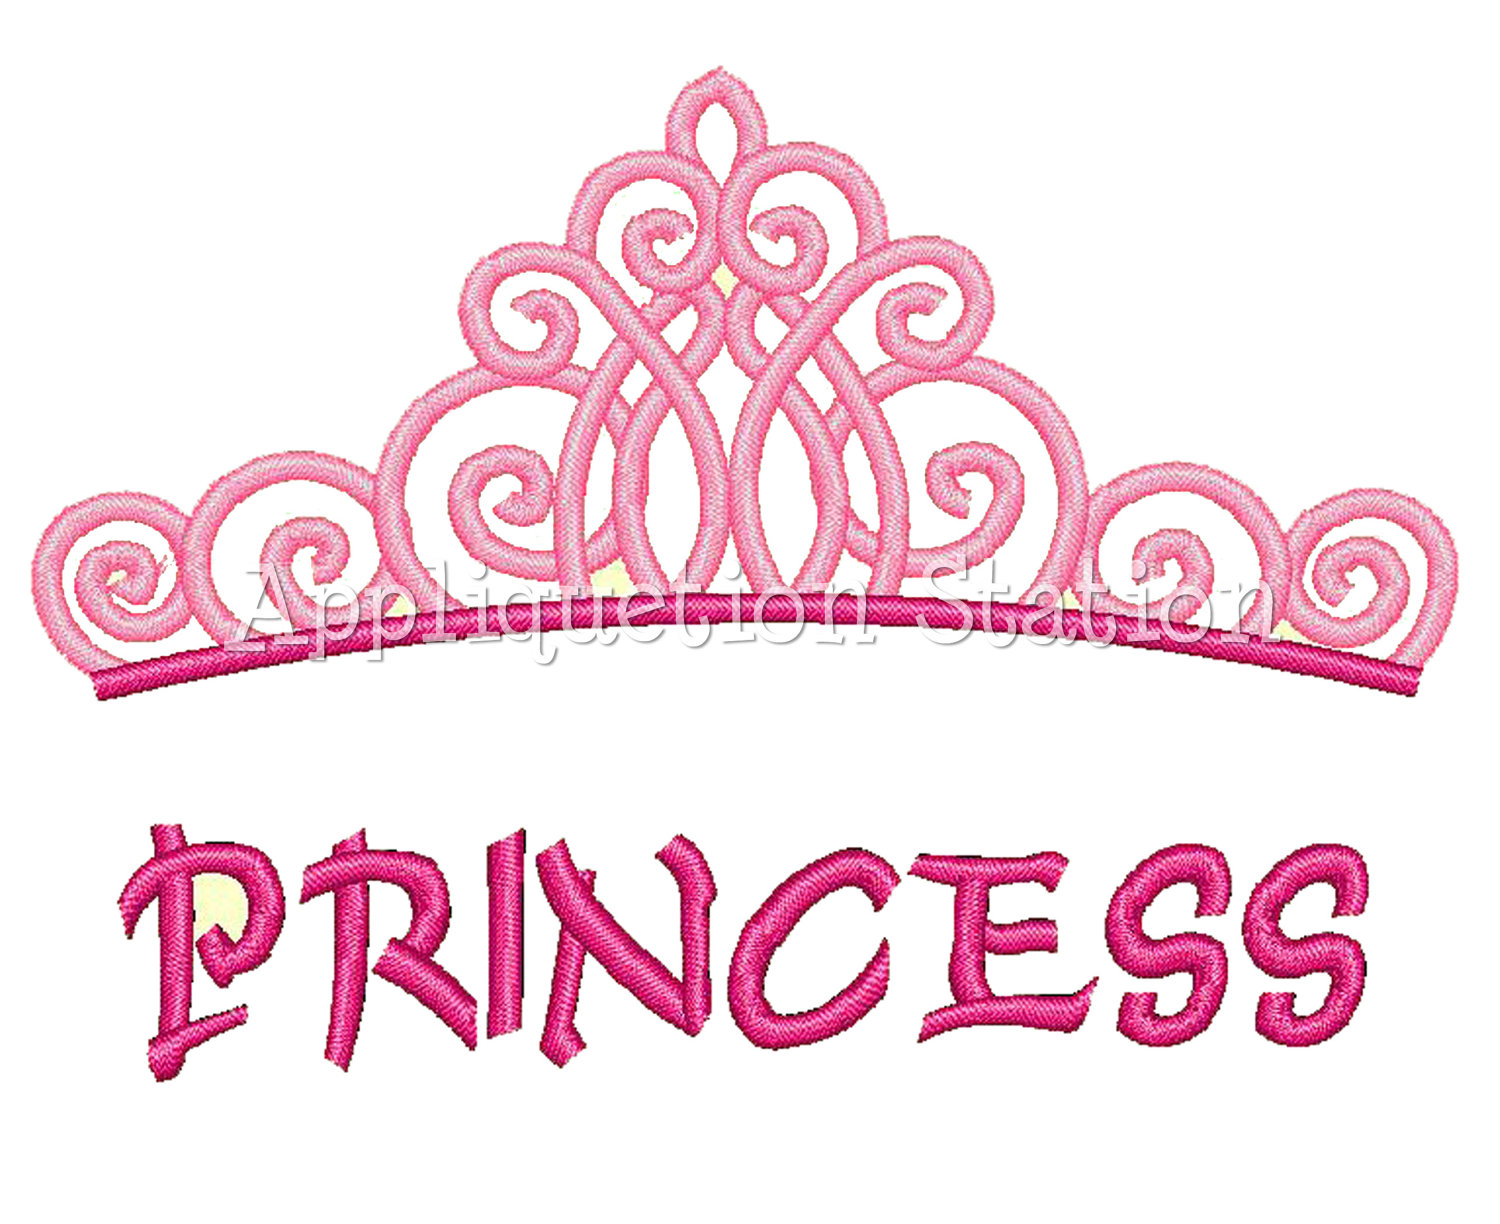 Tiaras And Crowns Clip Art Images Thecel-Tiaras And Crowns Clip Art Images Thecelebritypix-19